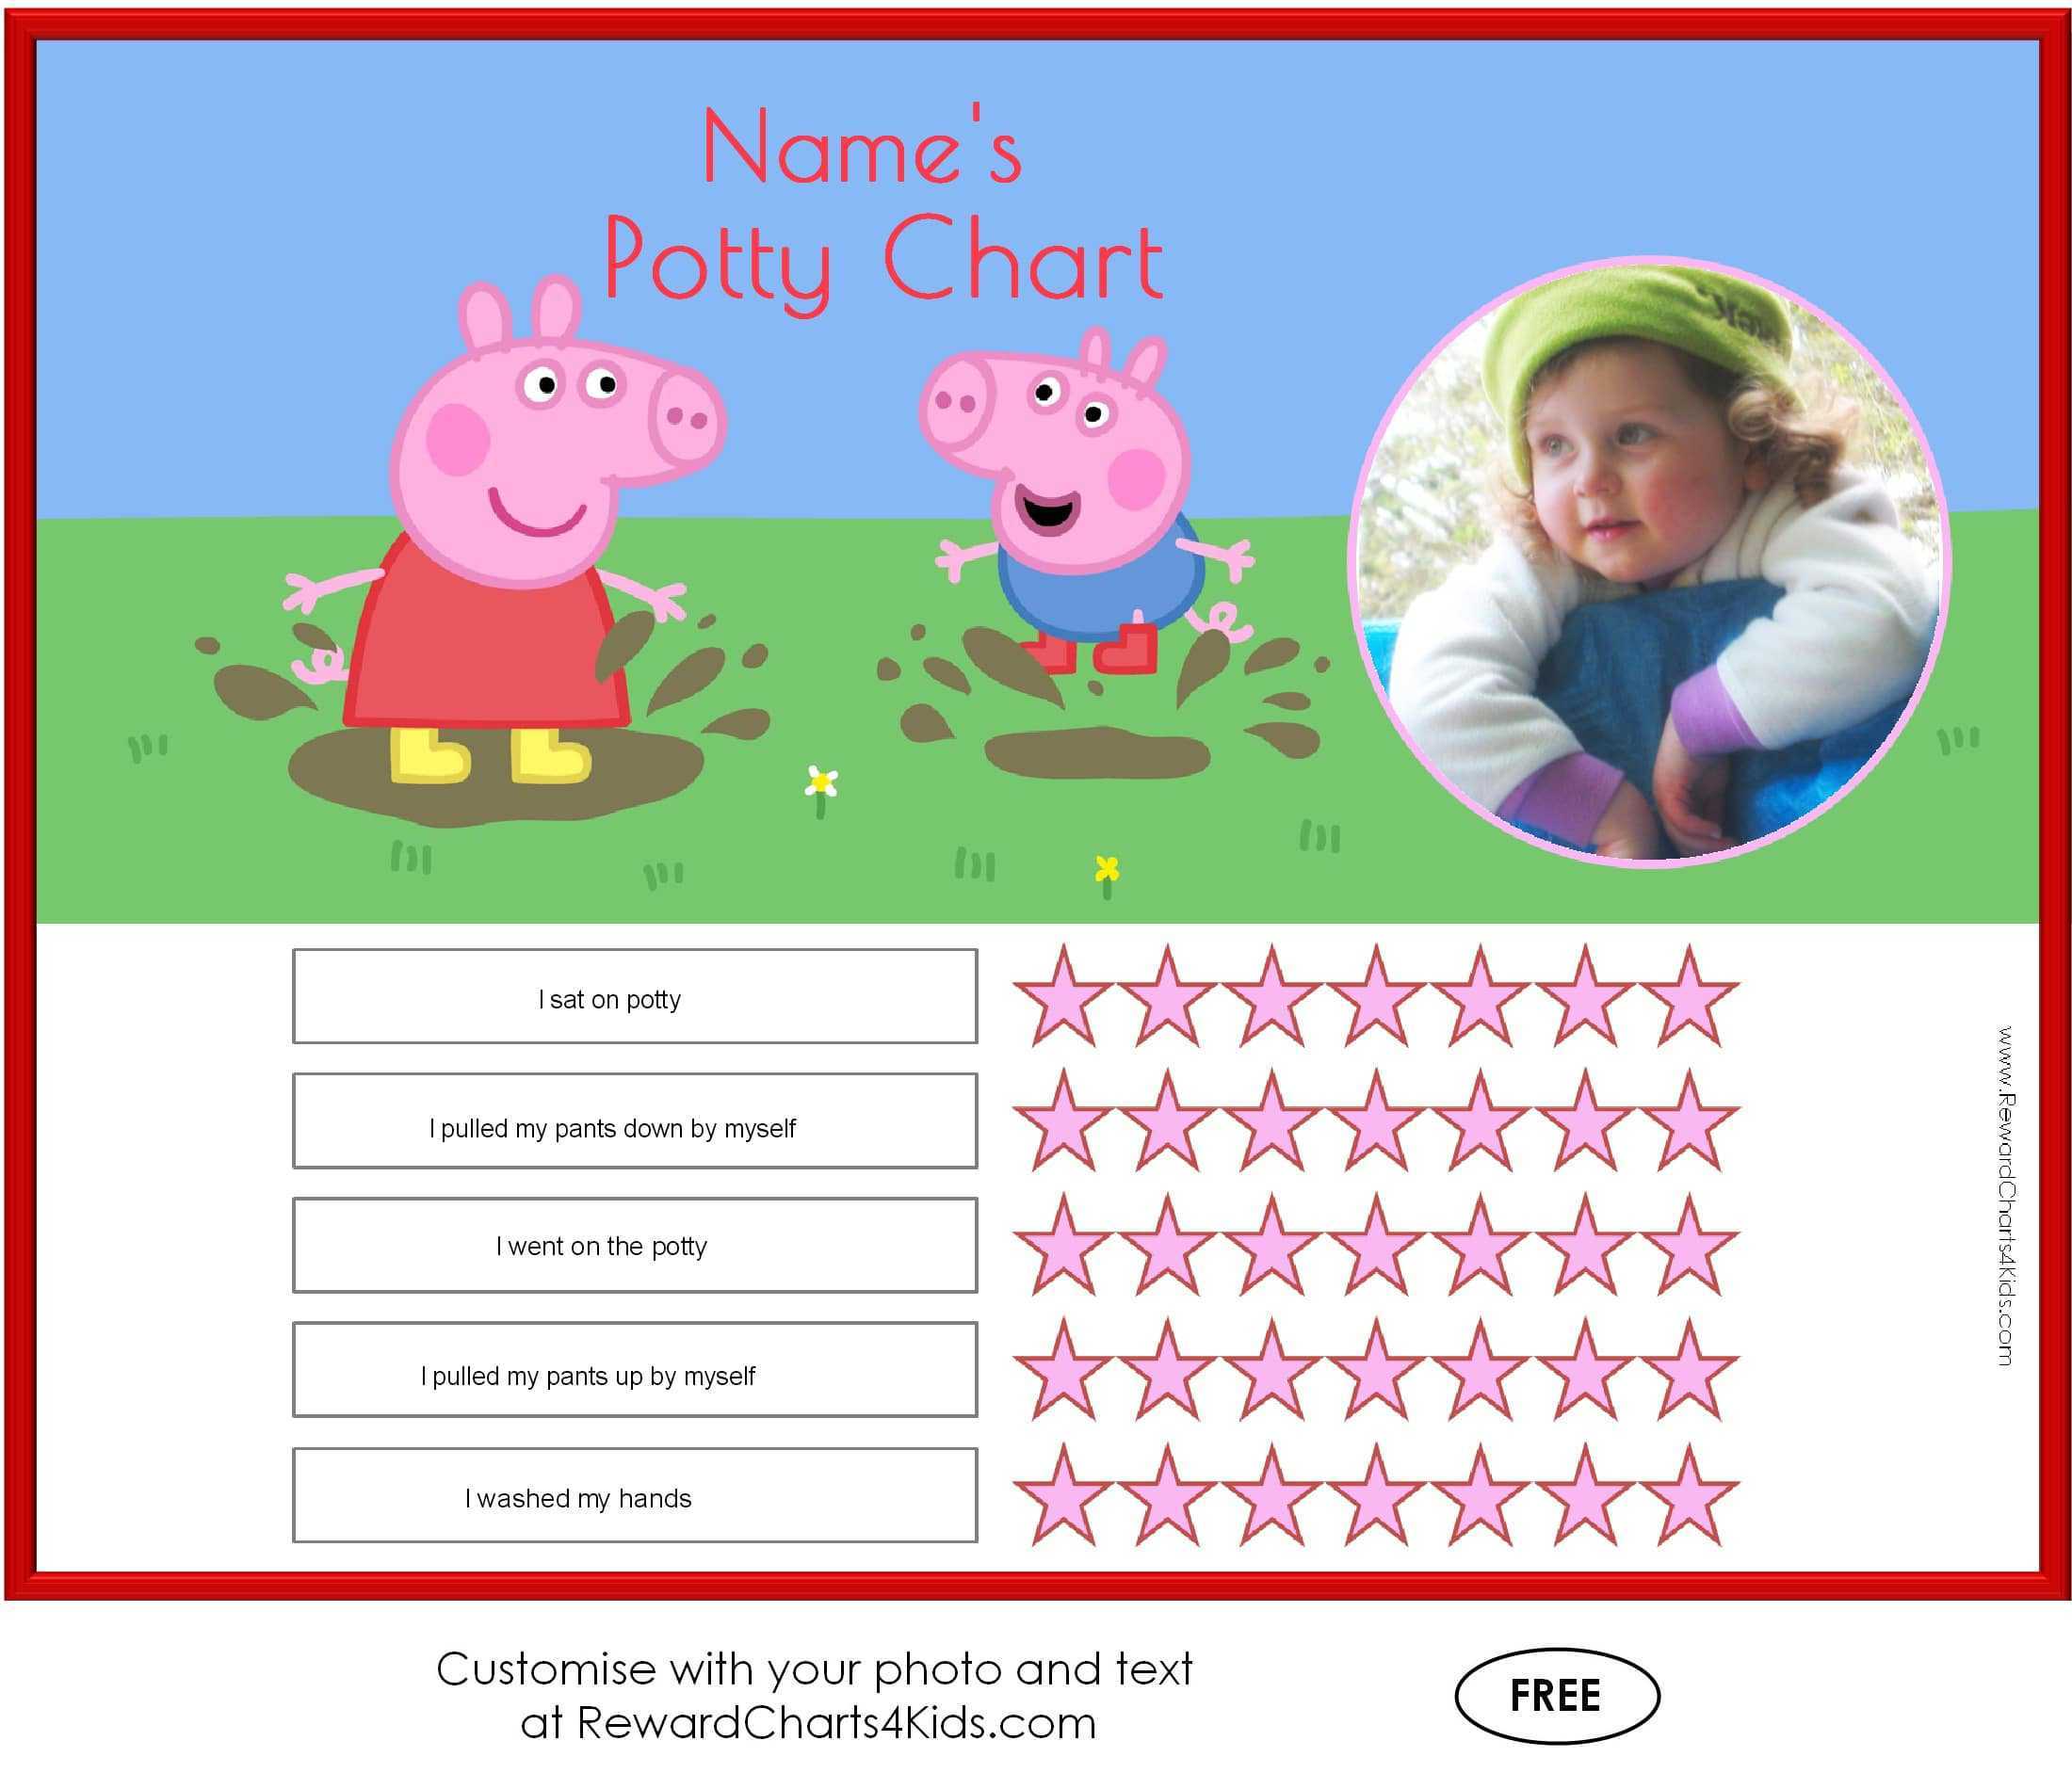 graphic relating to Peppa Pig Character Free Printable Images named Absolutely free Peppa Pig Potty Performing exercises Charts Customise with Your Photograph